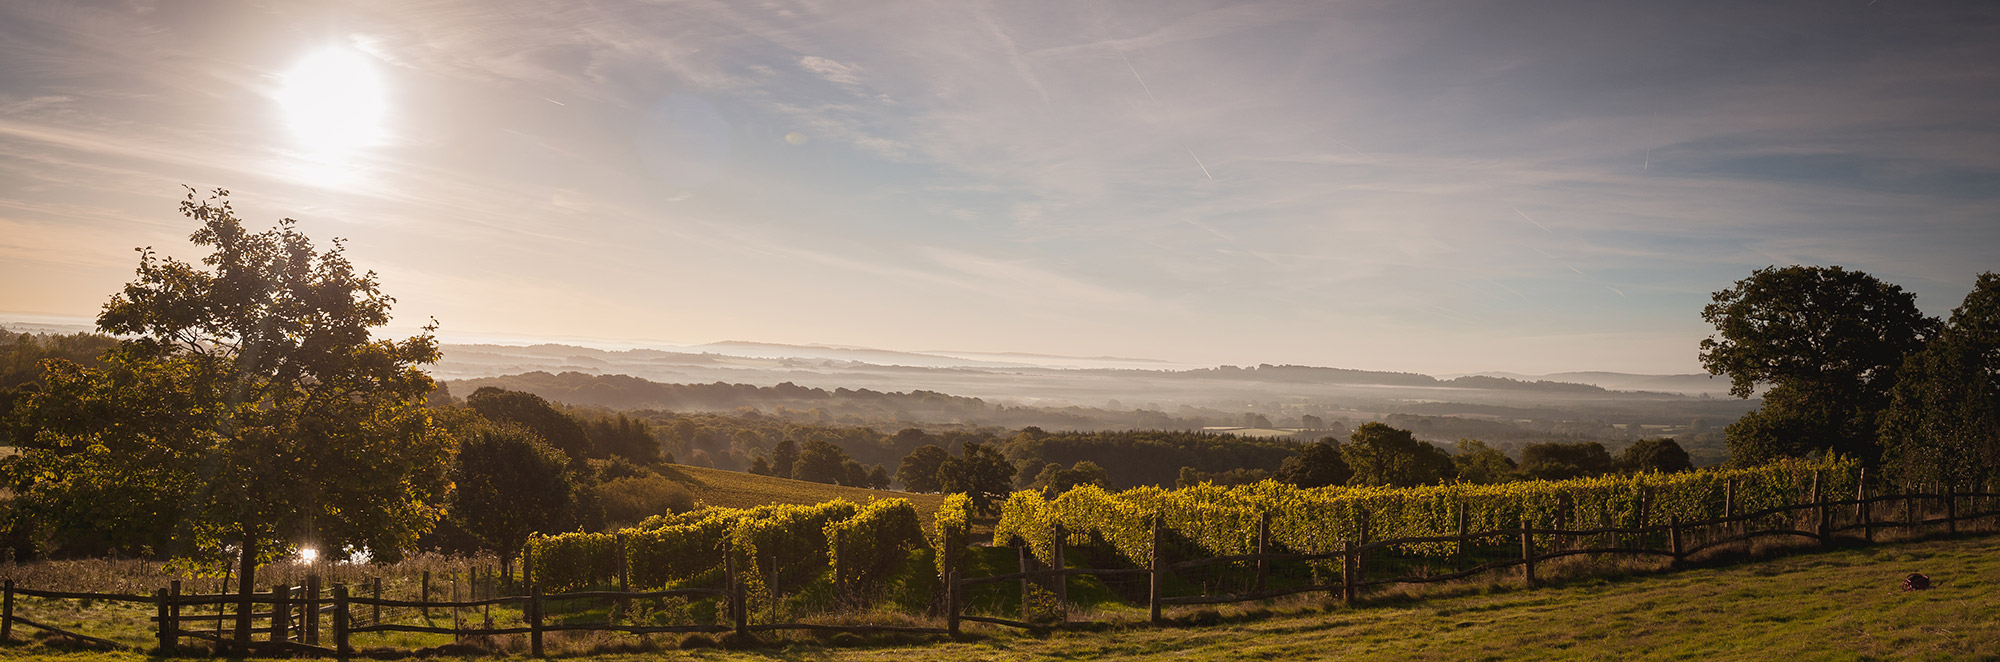 Blackdown Ridge Vineyard